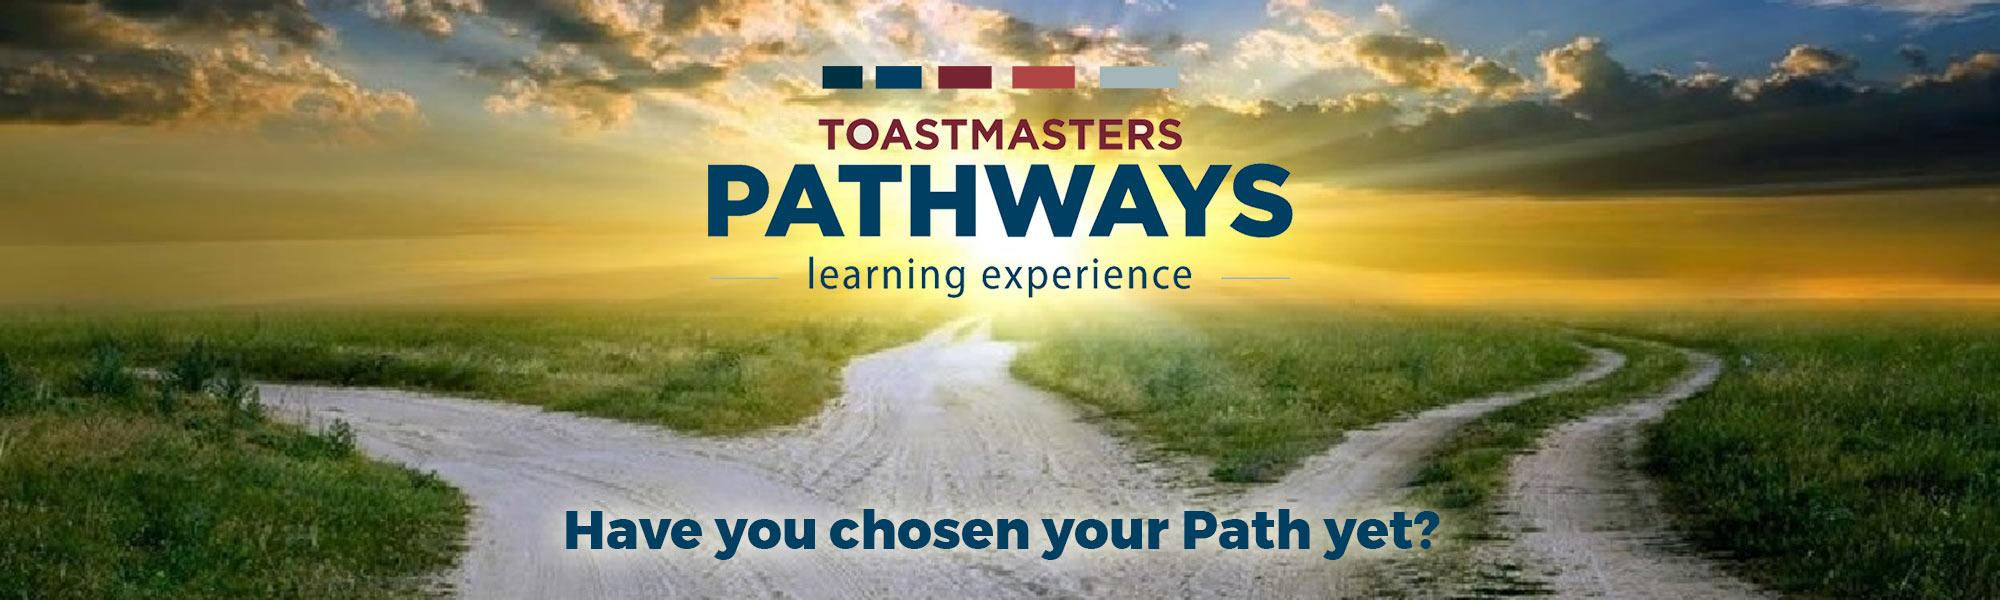 "Pathways Experience.  Three paths leading off to different directions. ""Have you chosen your path yet?"""